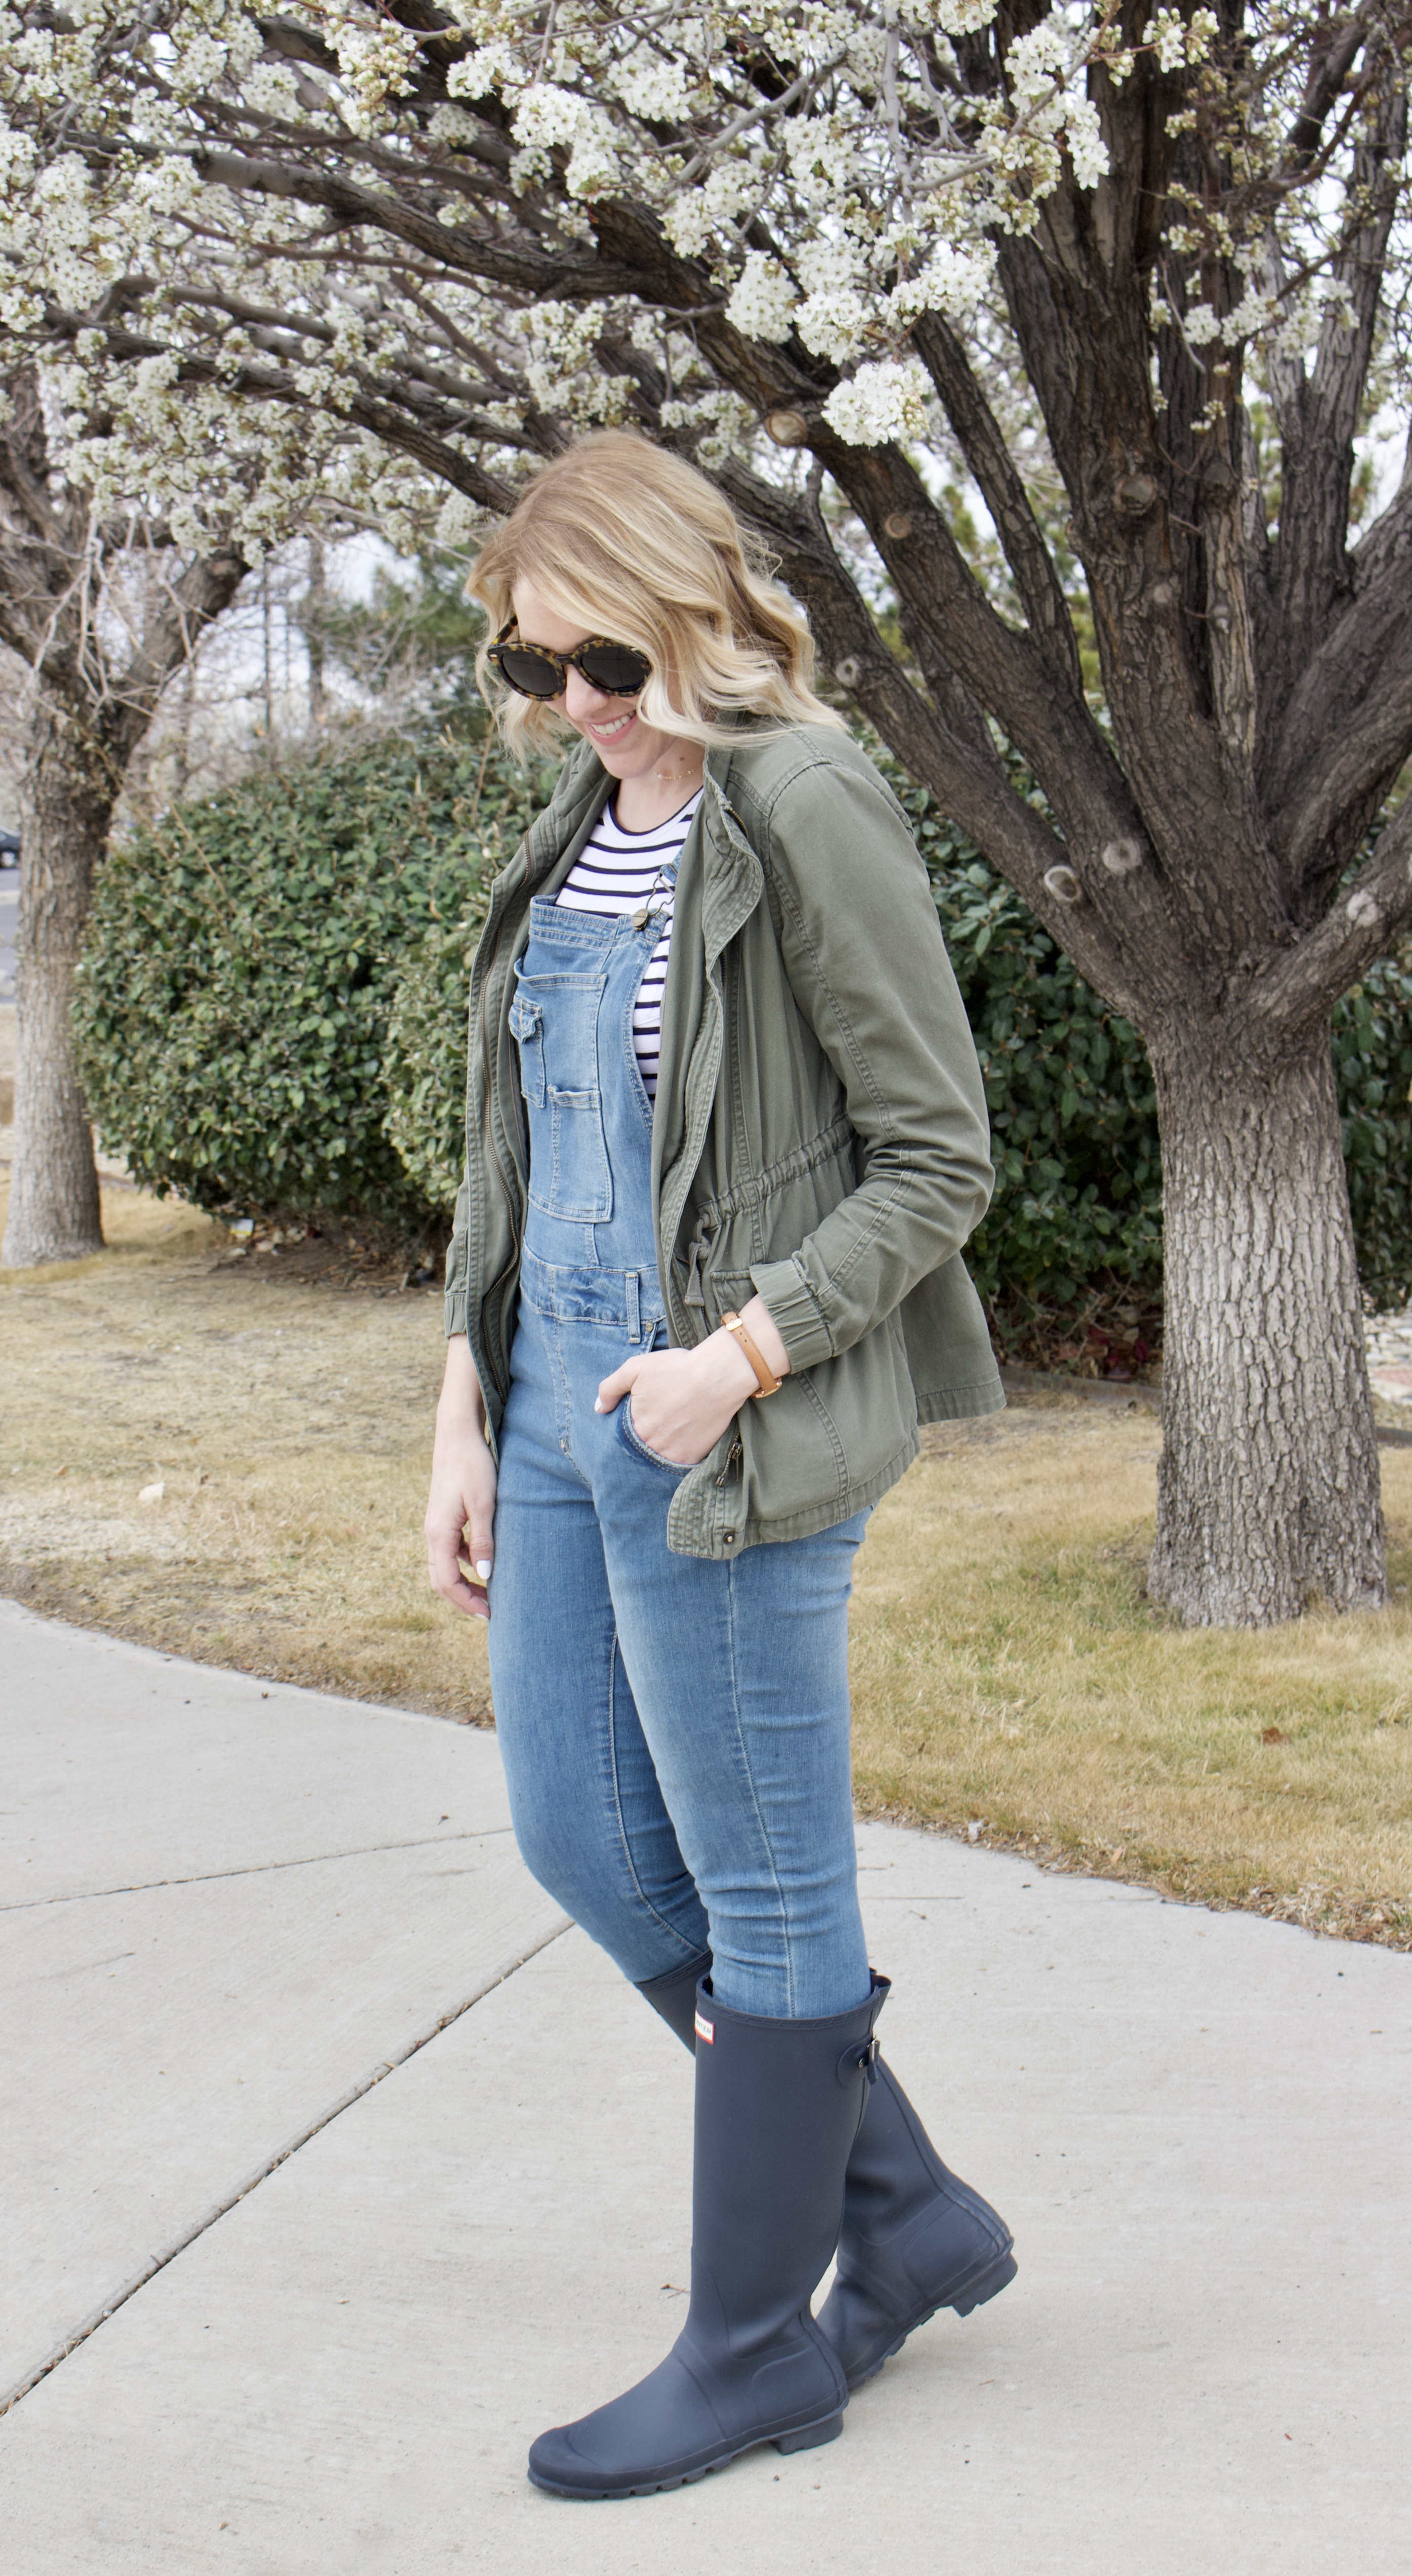 mom style overalls outfit #momstyle #hunterboots #overalls